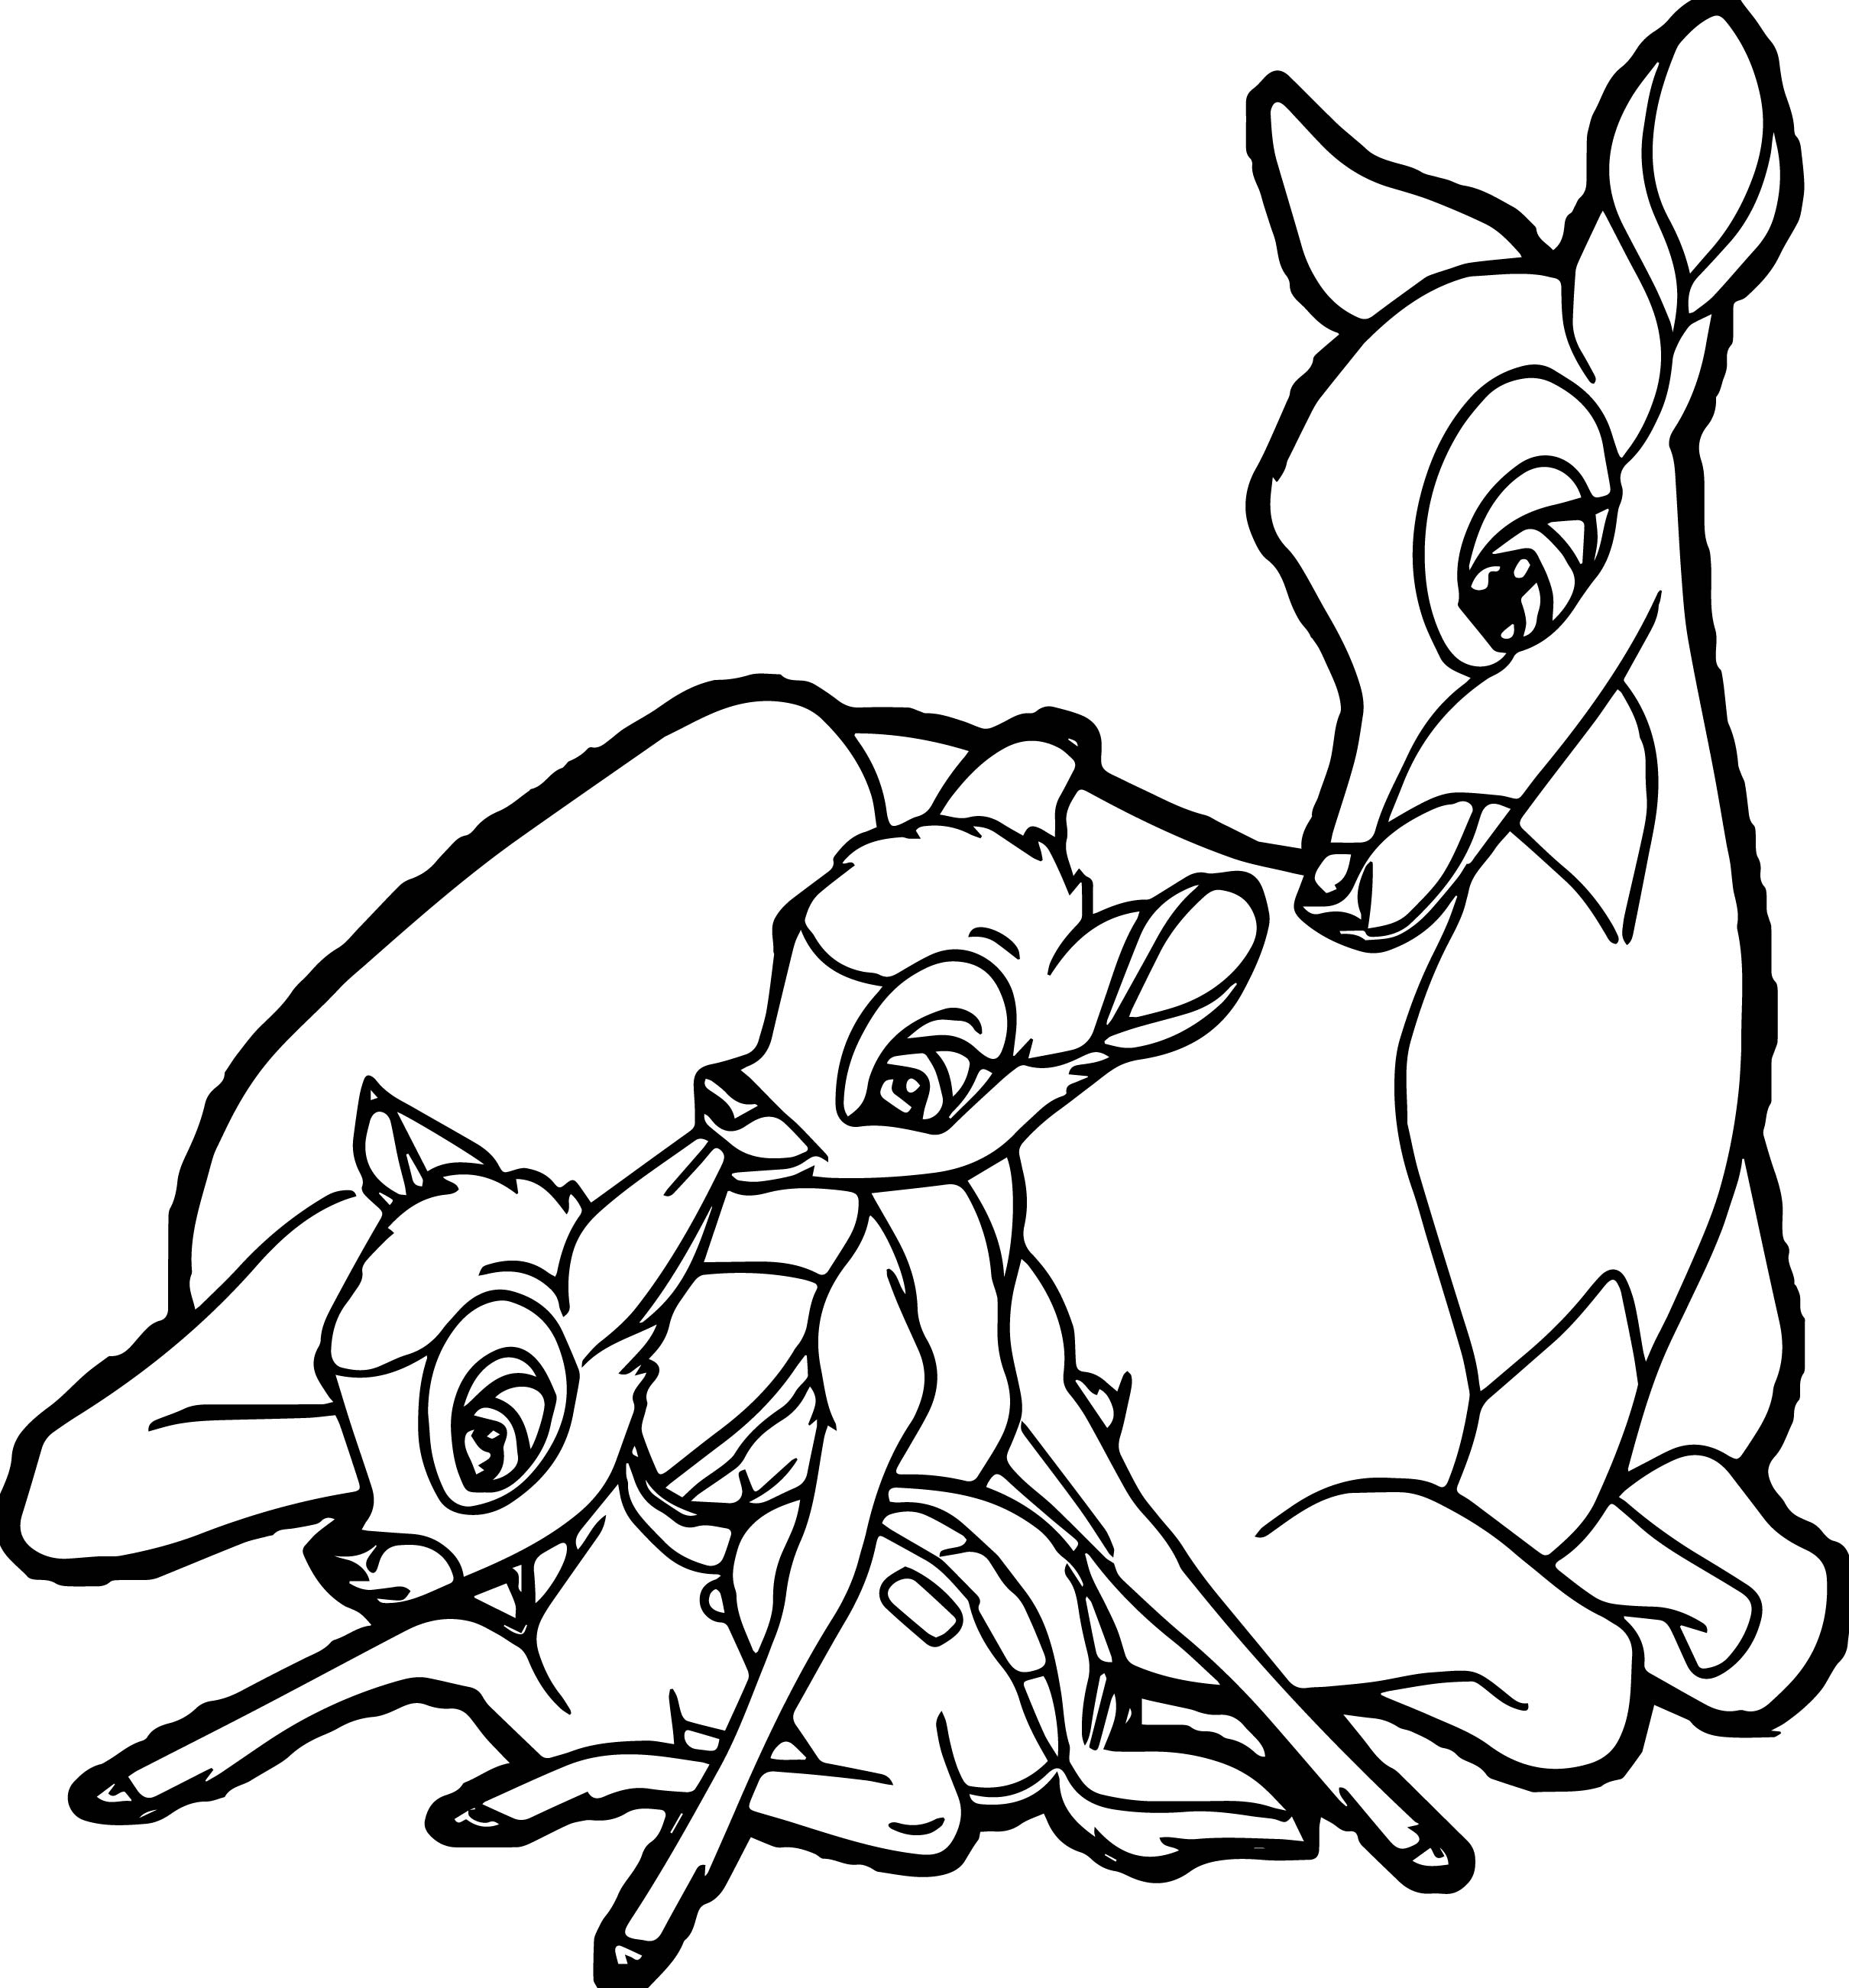 bambi mother child deers coloring pages wecoloringpage